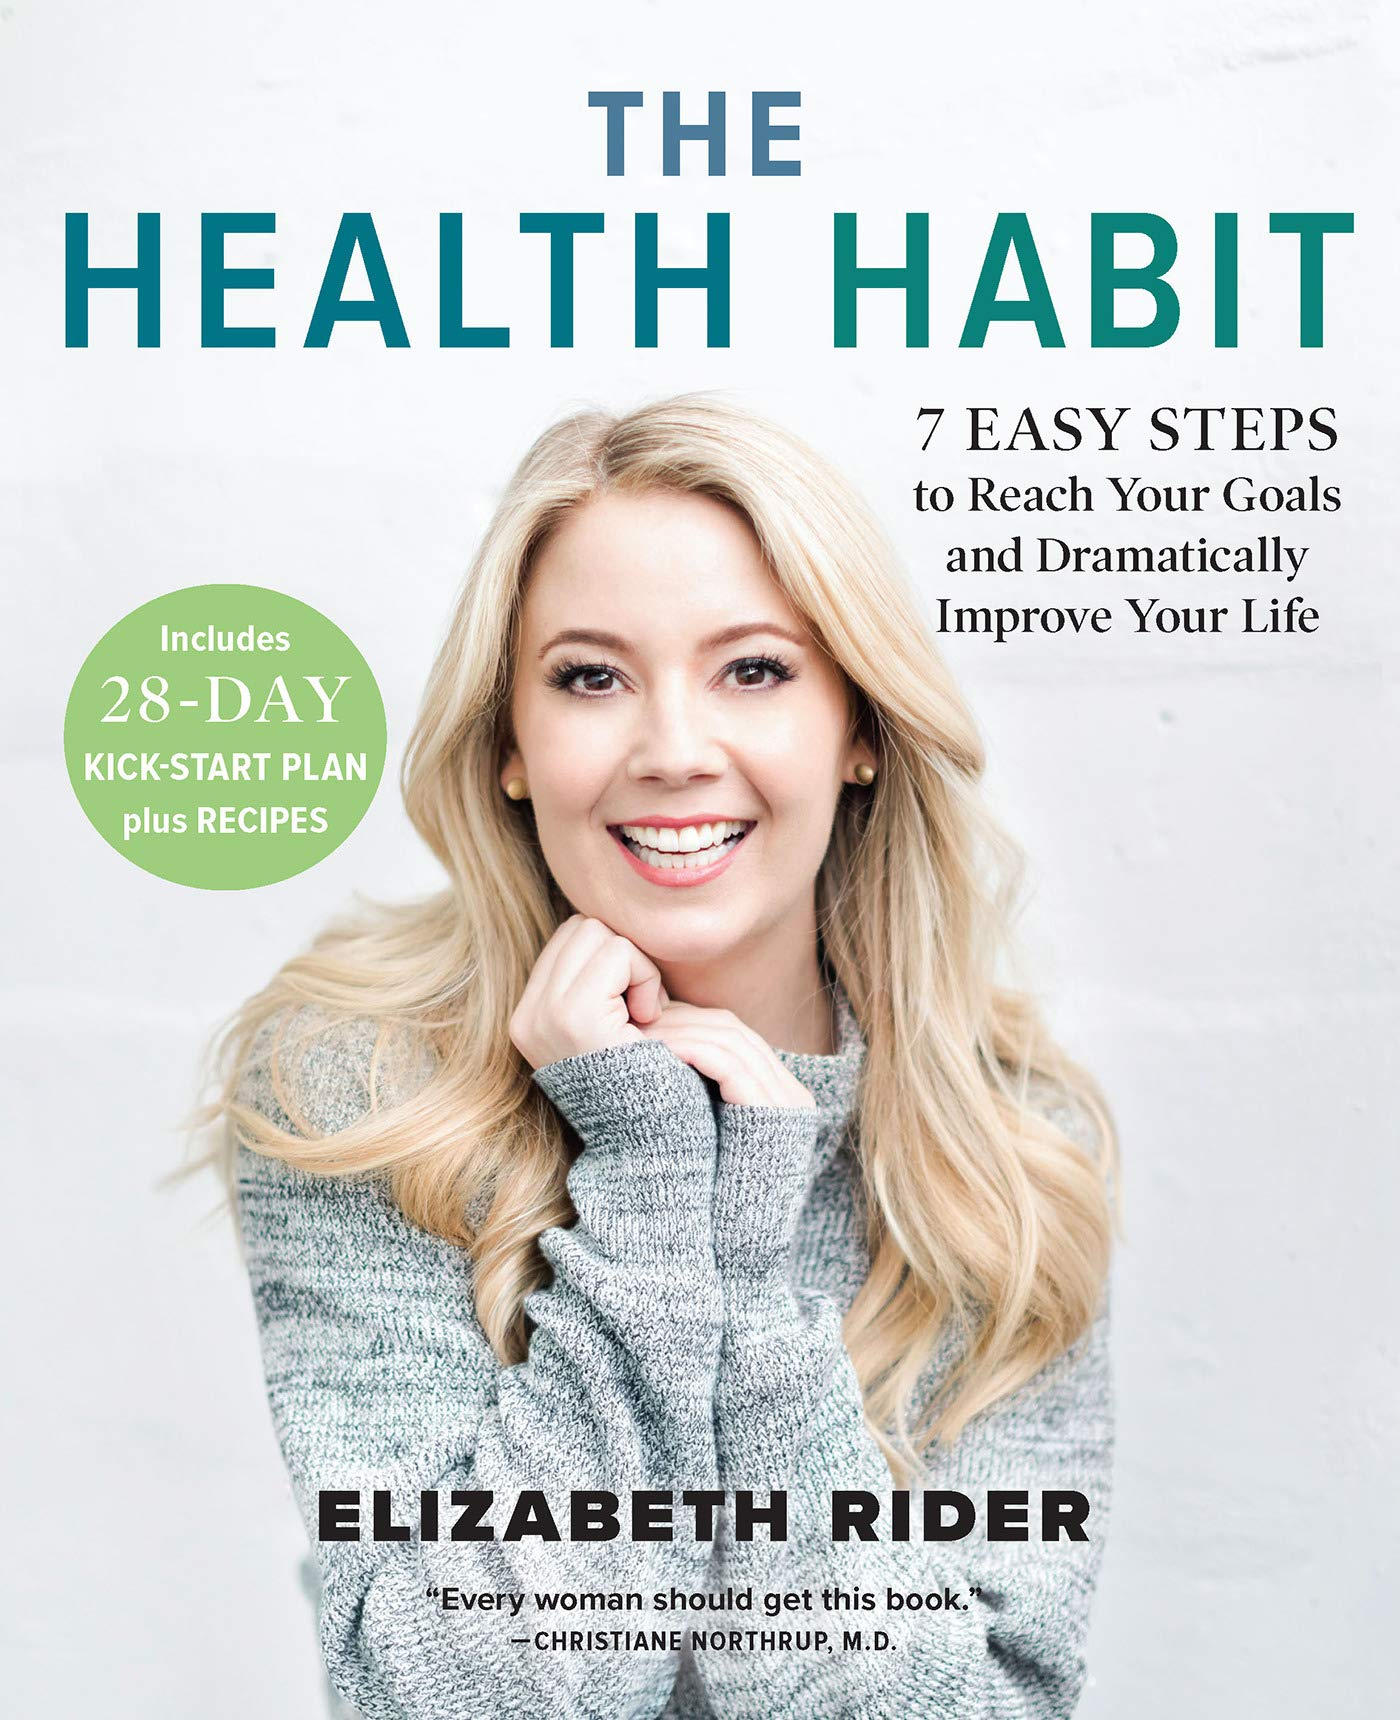 The Health Habit: 7 Easy Steps To Reach Your Goals And Dramatically Improve Your Life